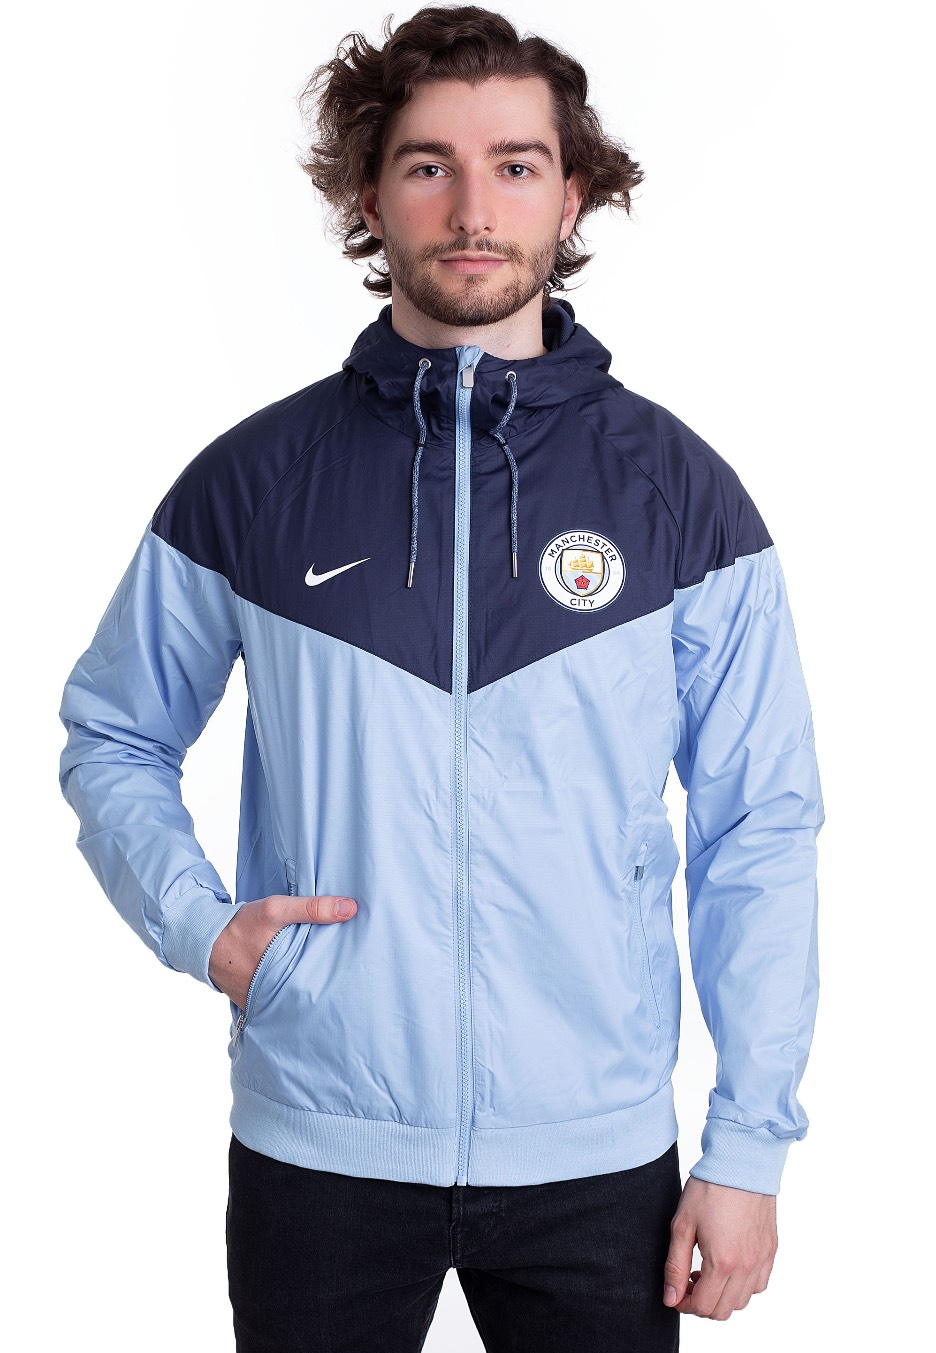 f0eb3a05b7 Nike - Manchester City FC Windrunner Field Blue Midnight Navy White - Jacket  - Streetwear Shop - Impericon.com Worldwide